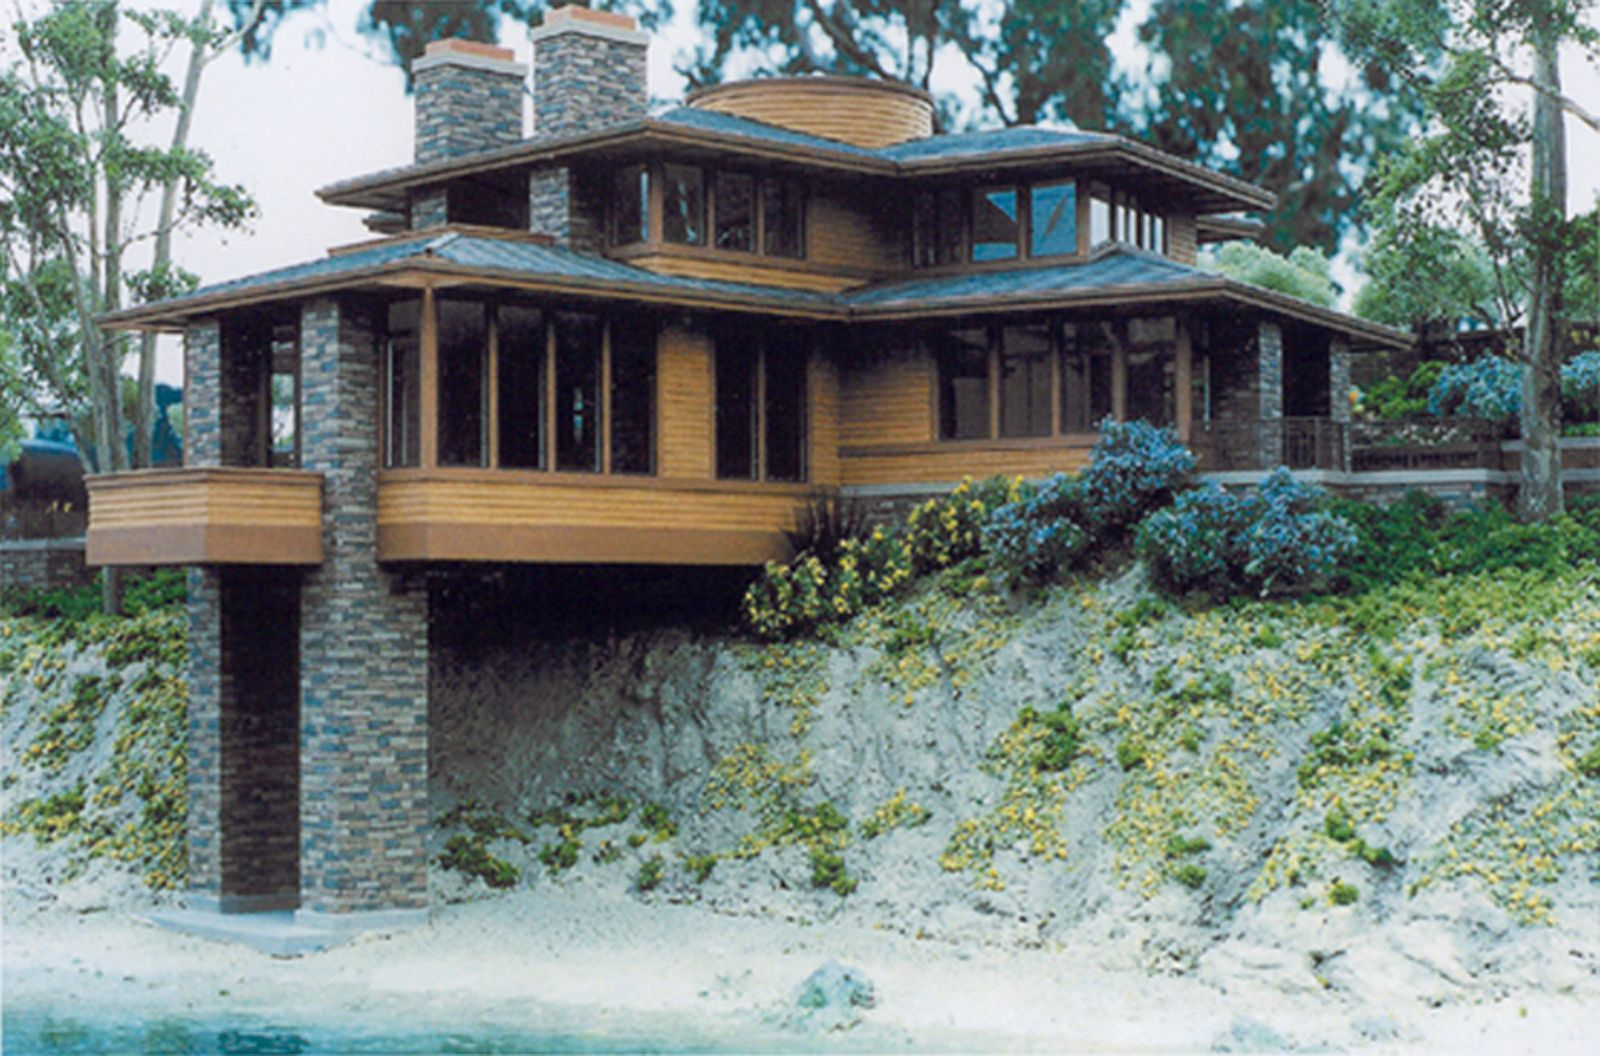 Frank lloyd wright style houses projects idea of 5 frank - Frank lloyd wright designs ...